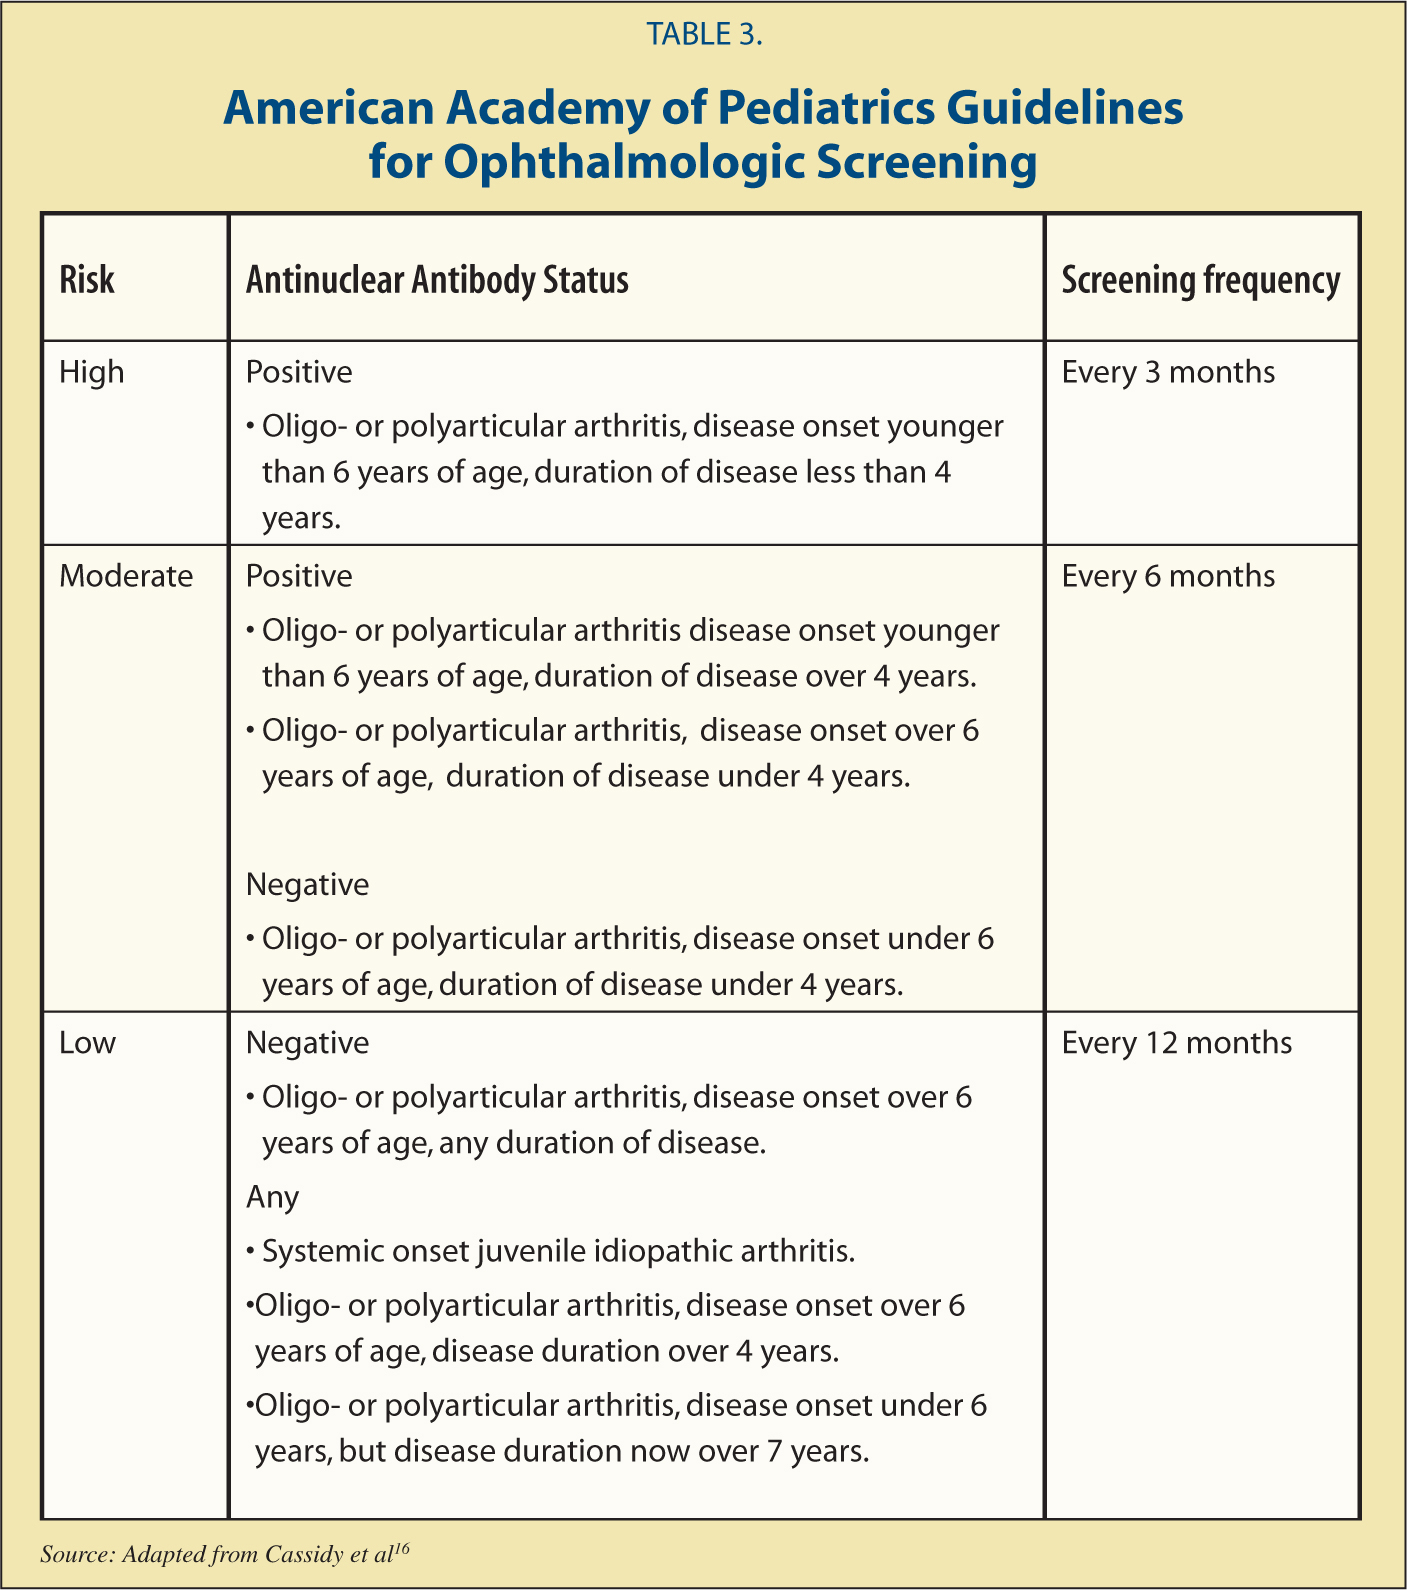 American Academy of Pediatrics Guidelines for Ophthalmologic Screening